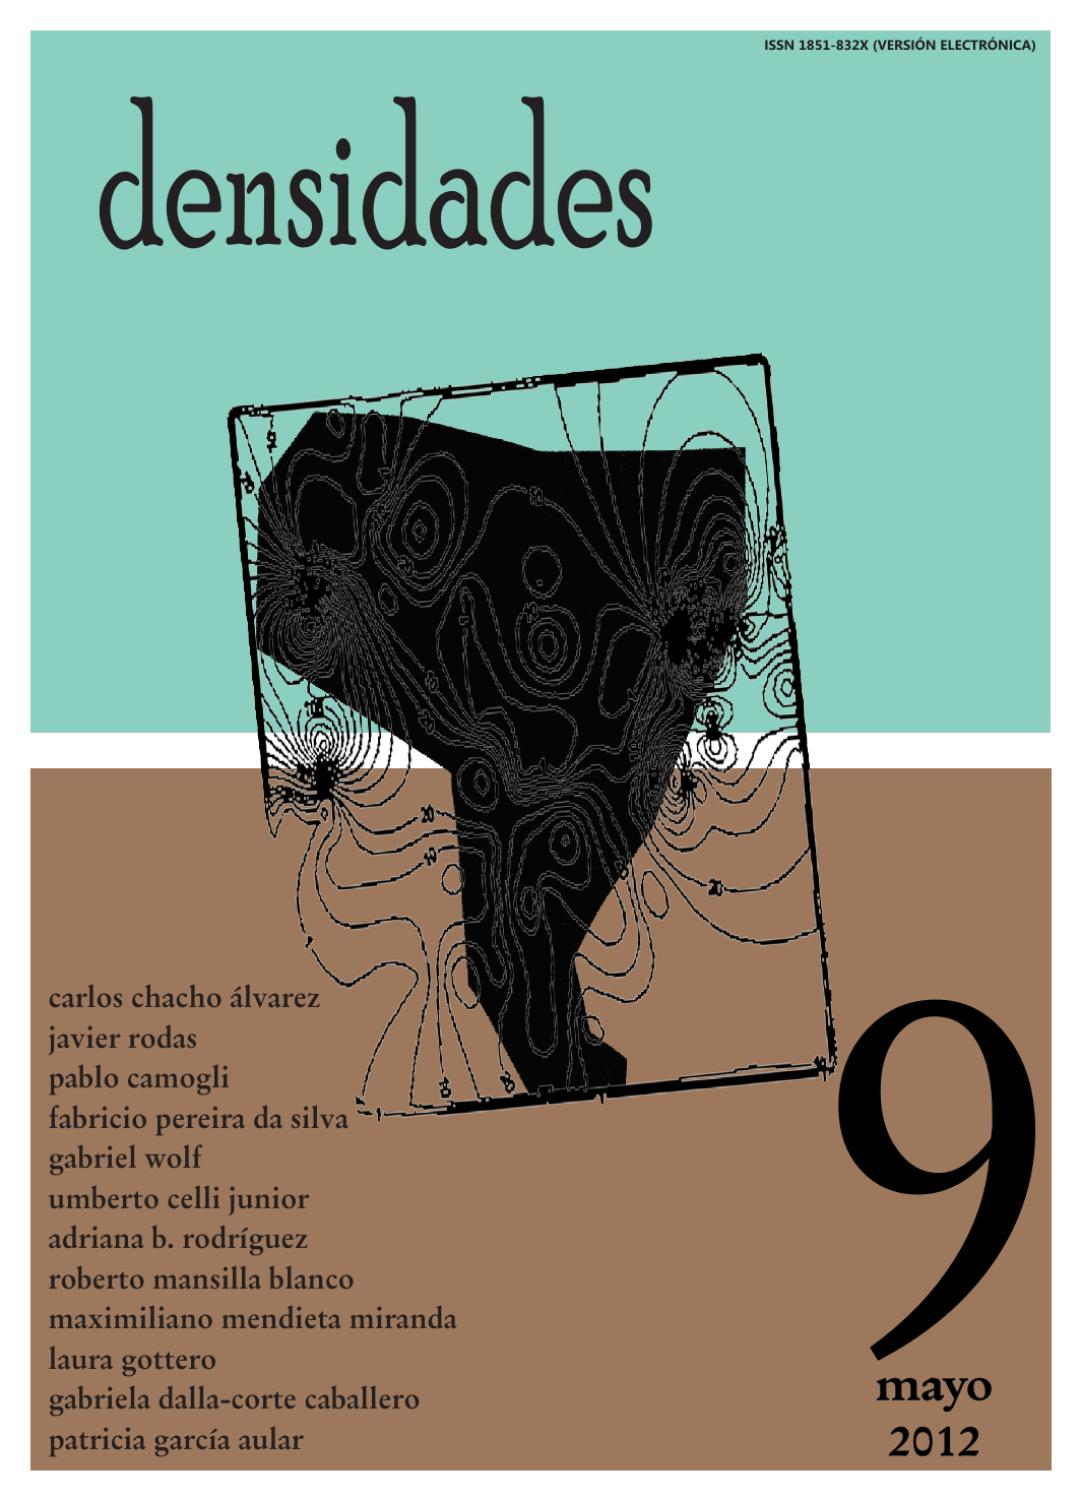 densidades n°9 by Revista Densidades - issuu